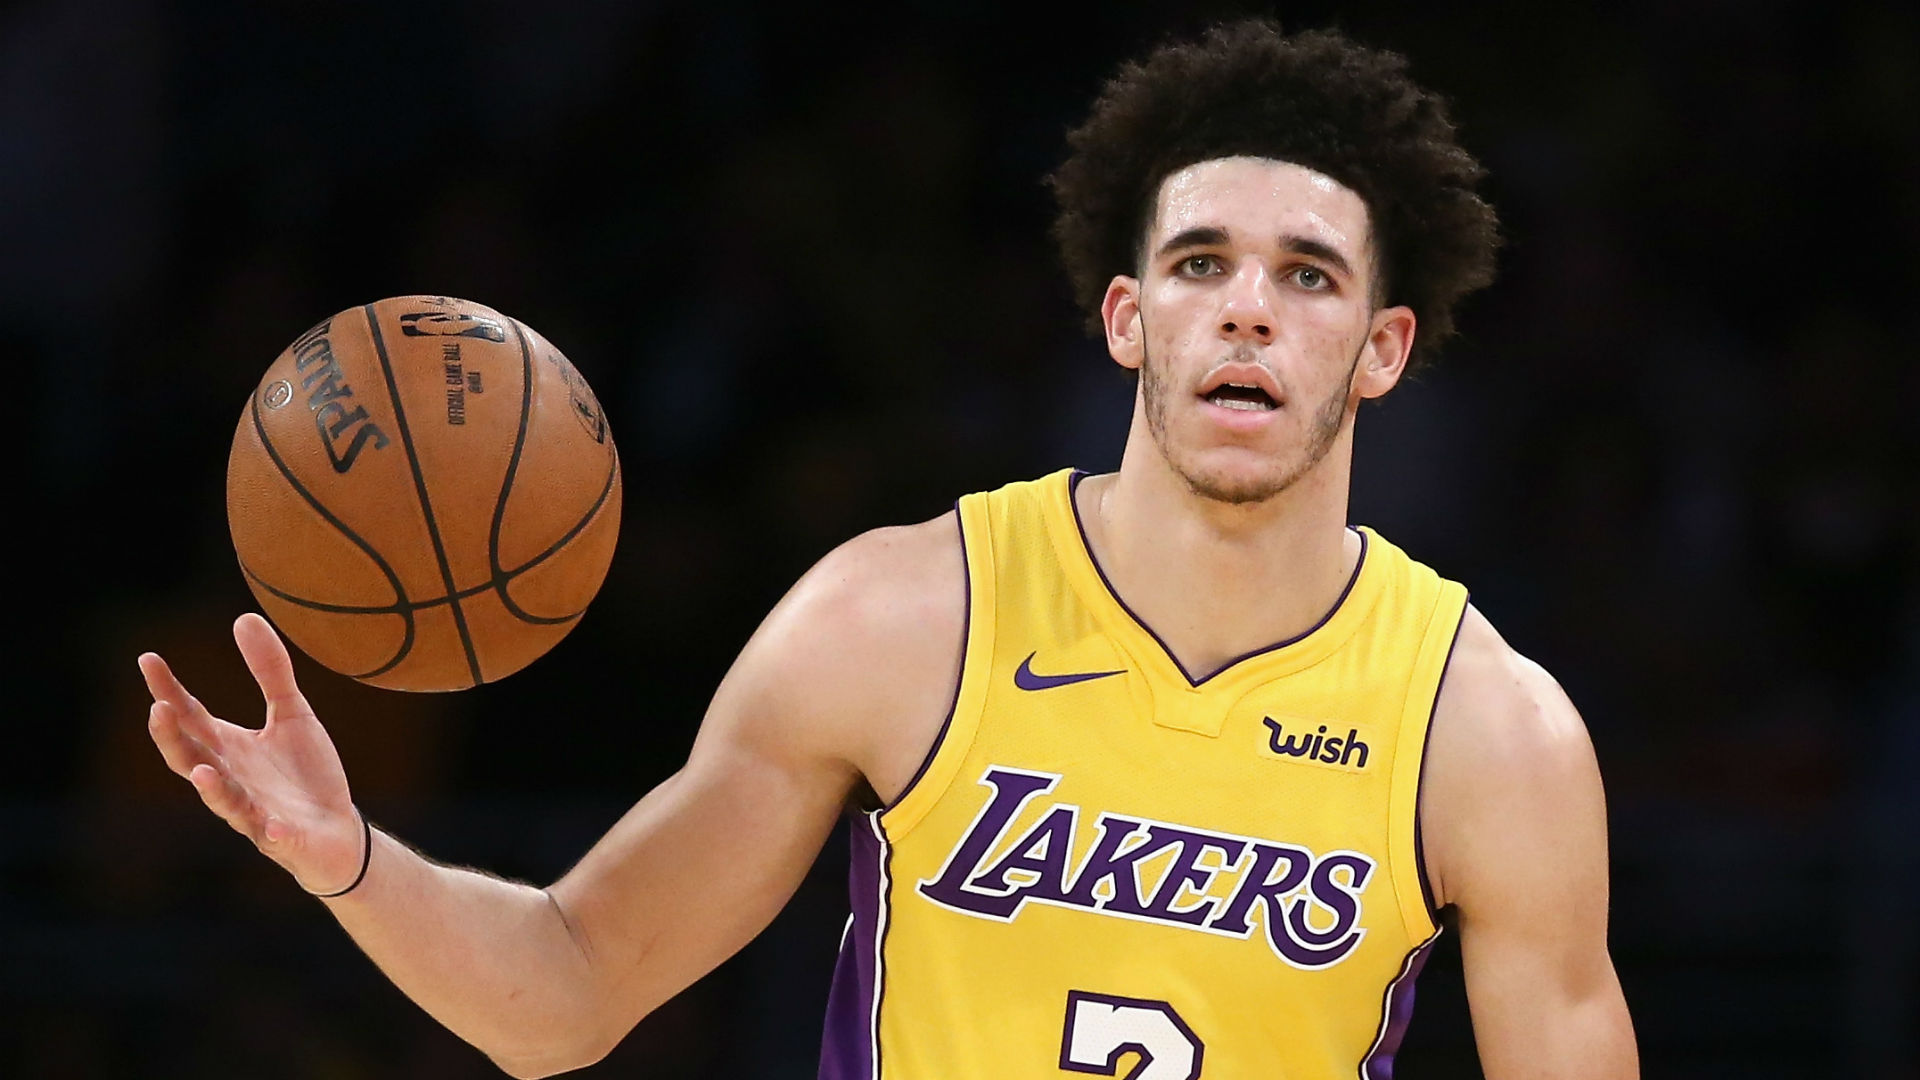 Lonzo Ball has 'no complaints' after benching in fourth quarter of Lakers win